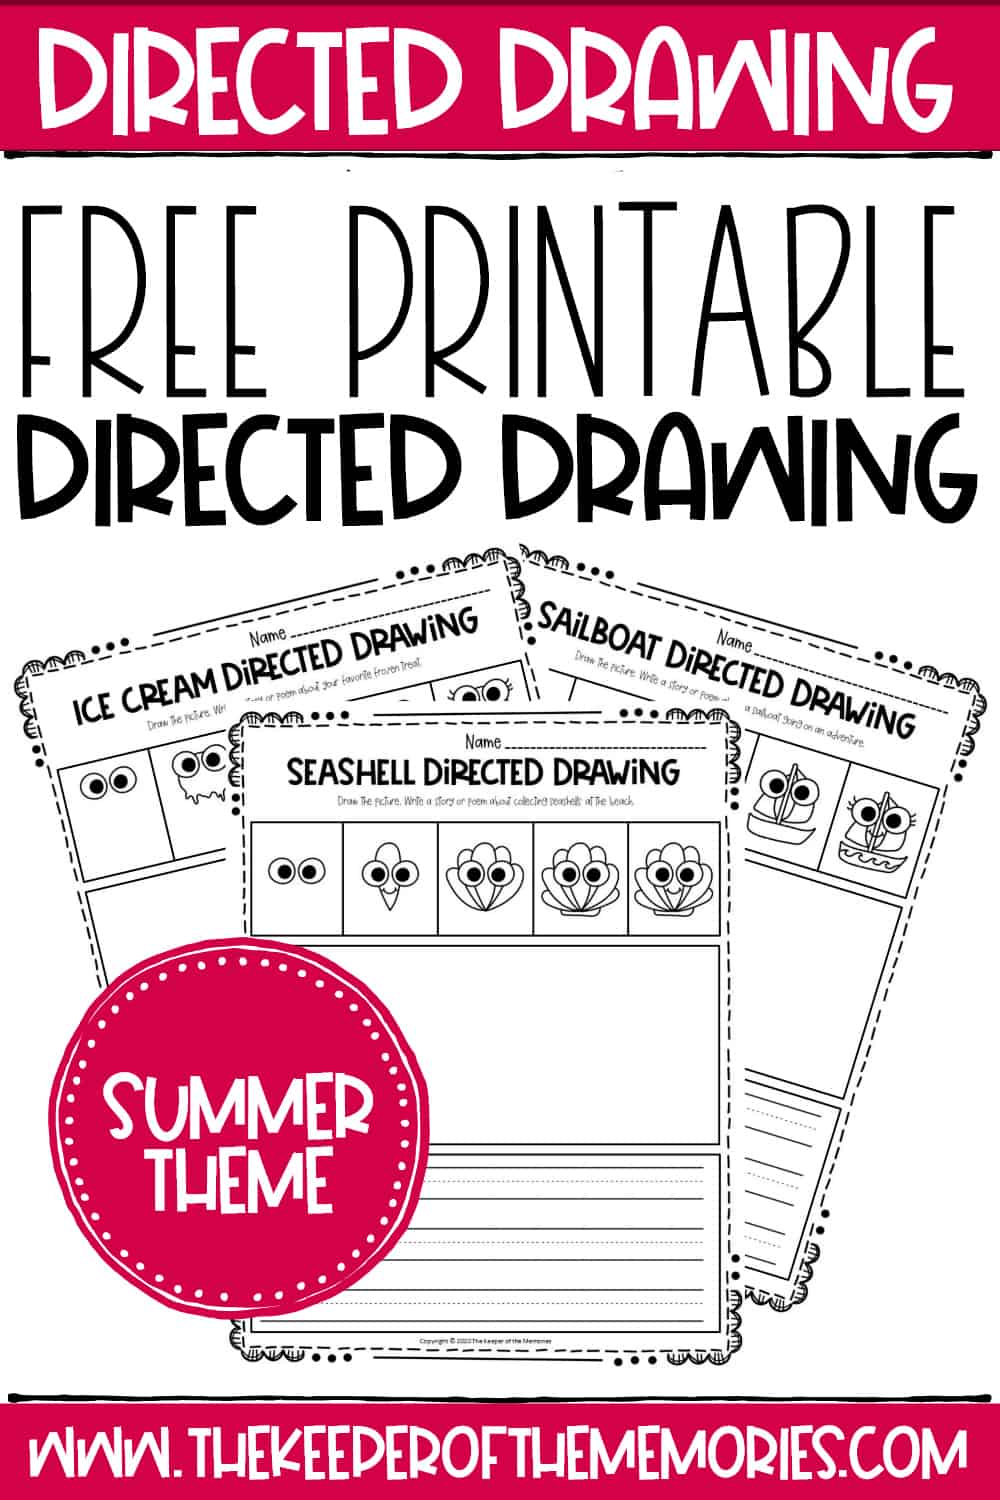 Free Printable Summer Directed Drawing